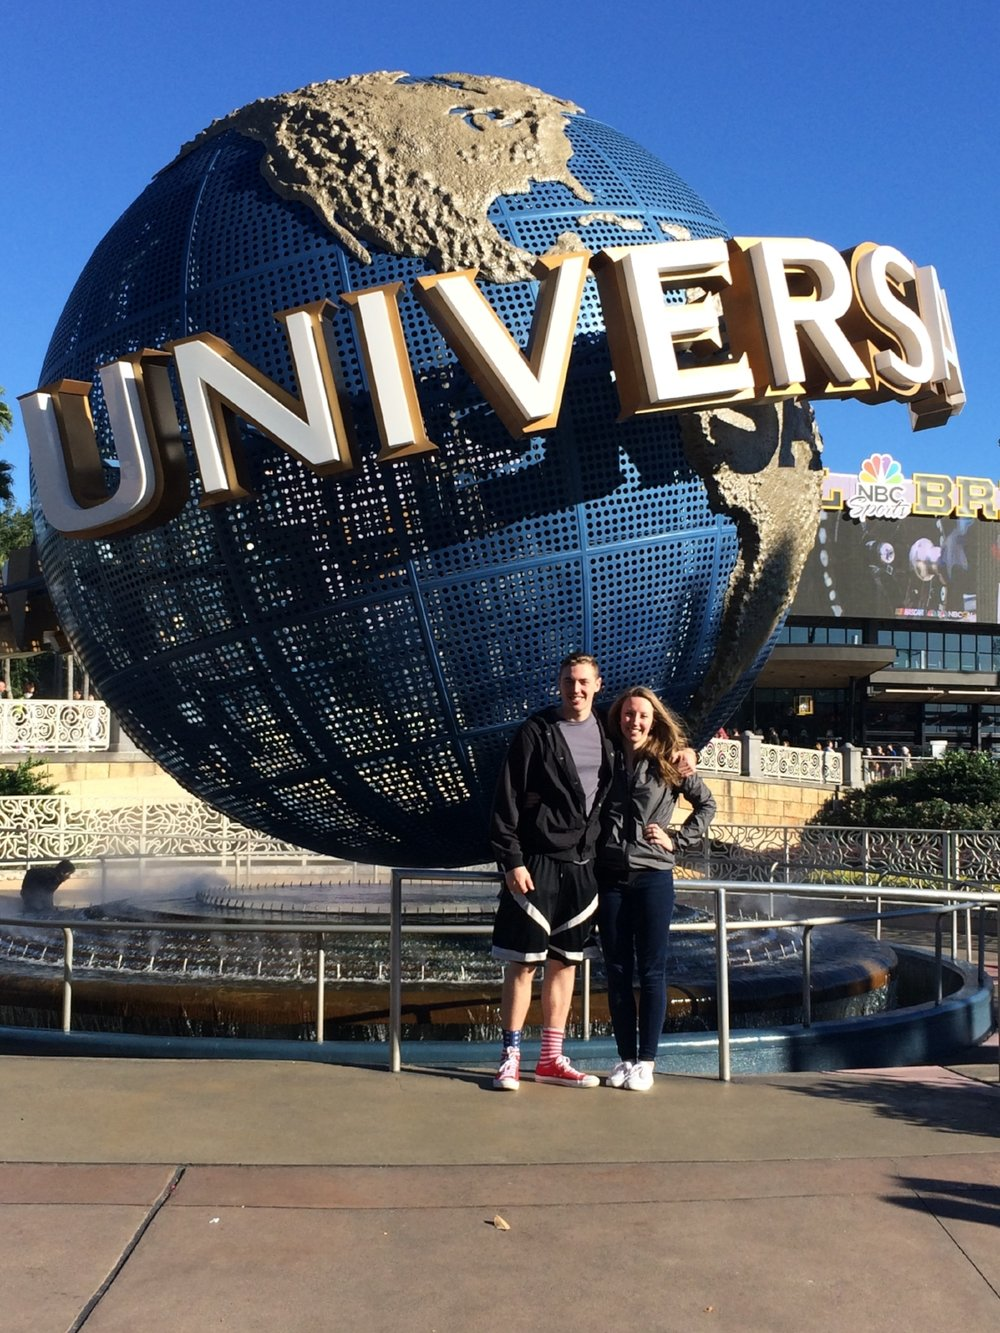 Last year's trip to Universal Studios